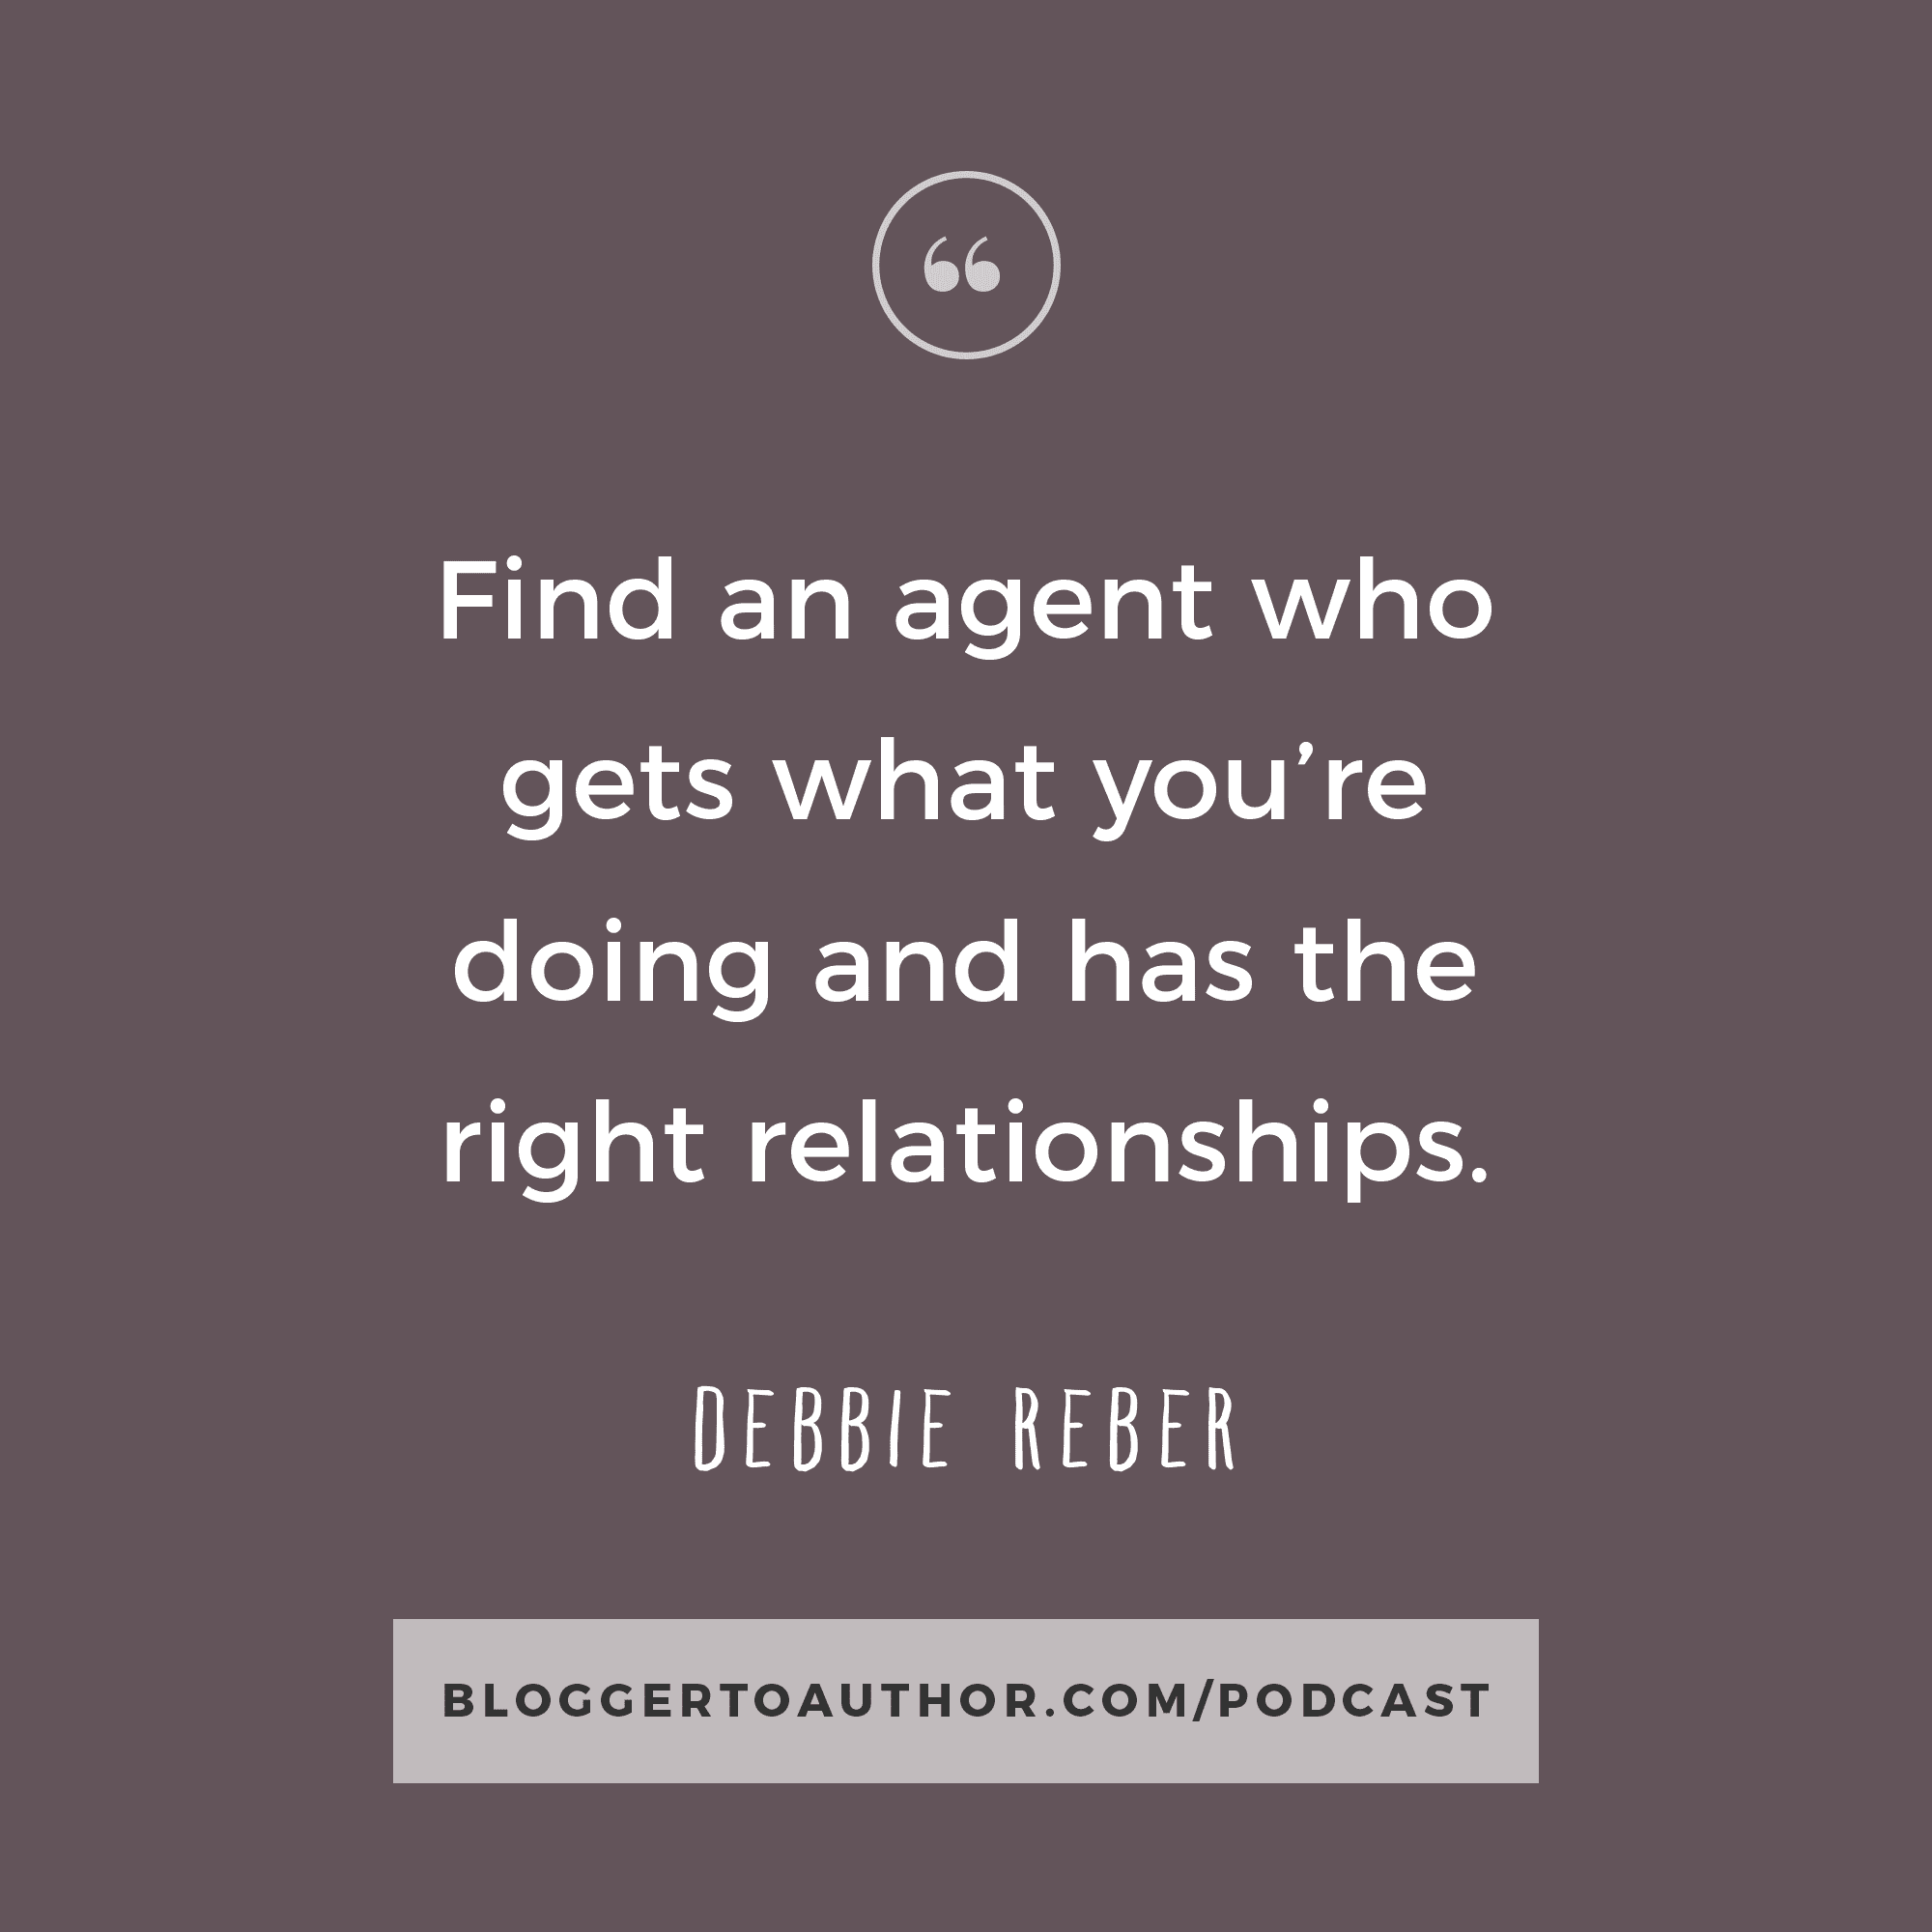 """""""Find an agent who gets what you're doing and has the right relationships."""" - Debbie Reber"""